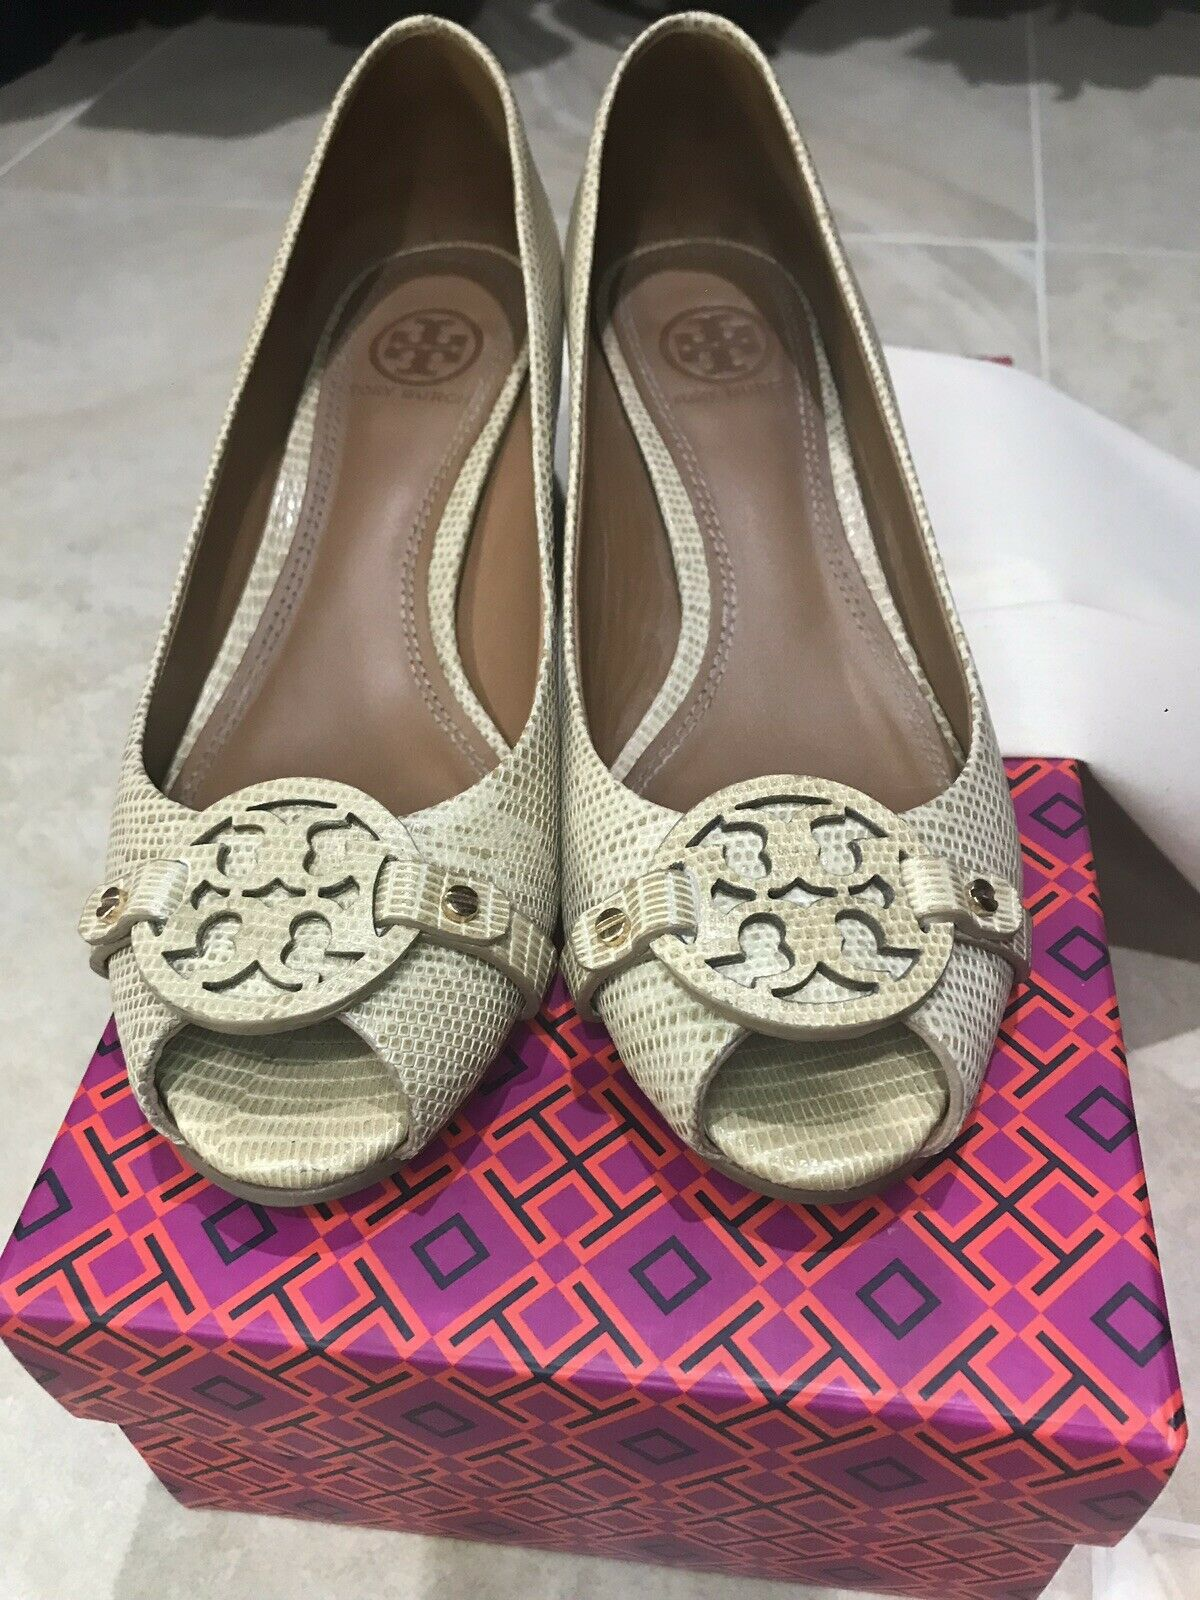 Tory Burch Embossed Snakeskin Print Leather Peep Toe Wedges In Trench Tan